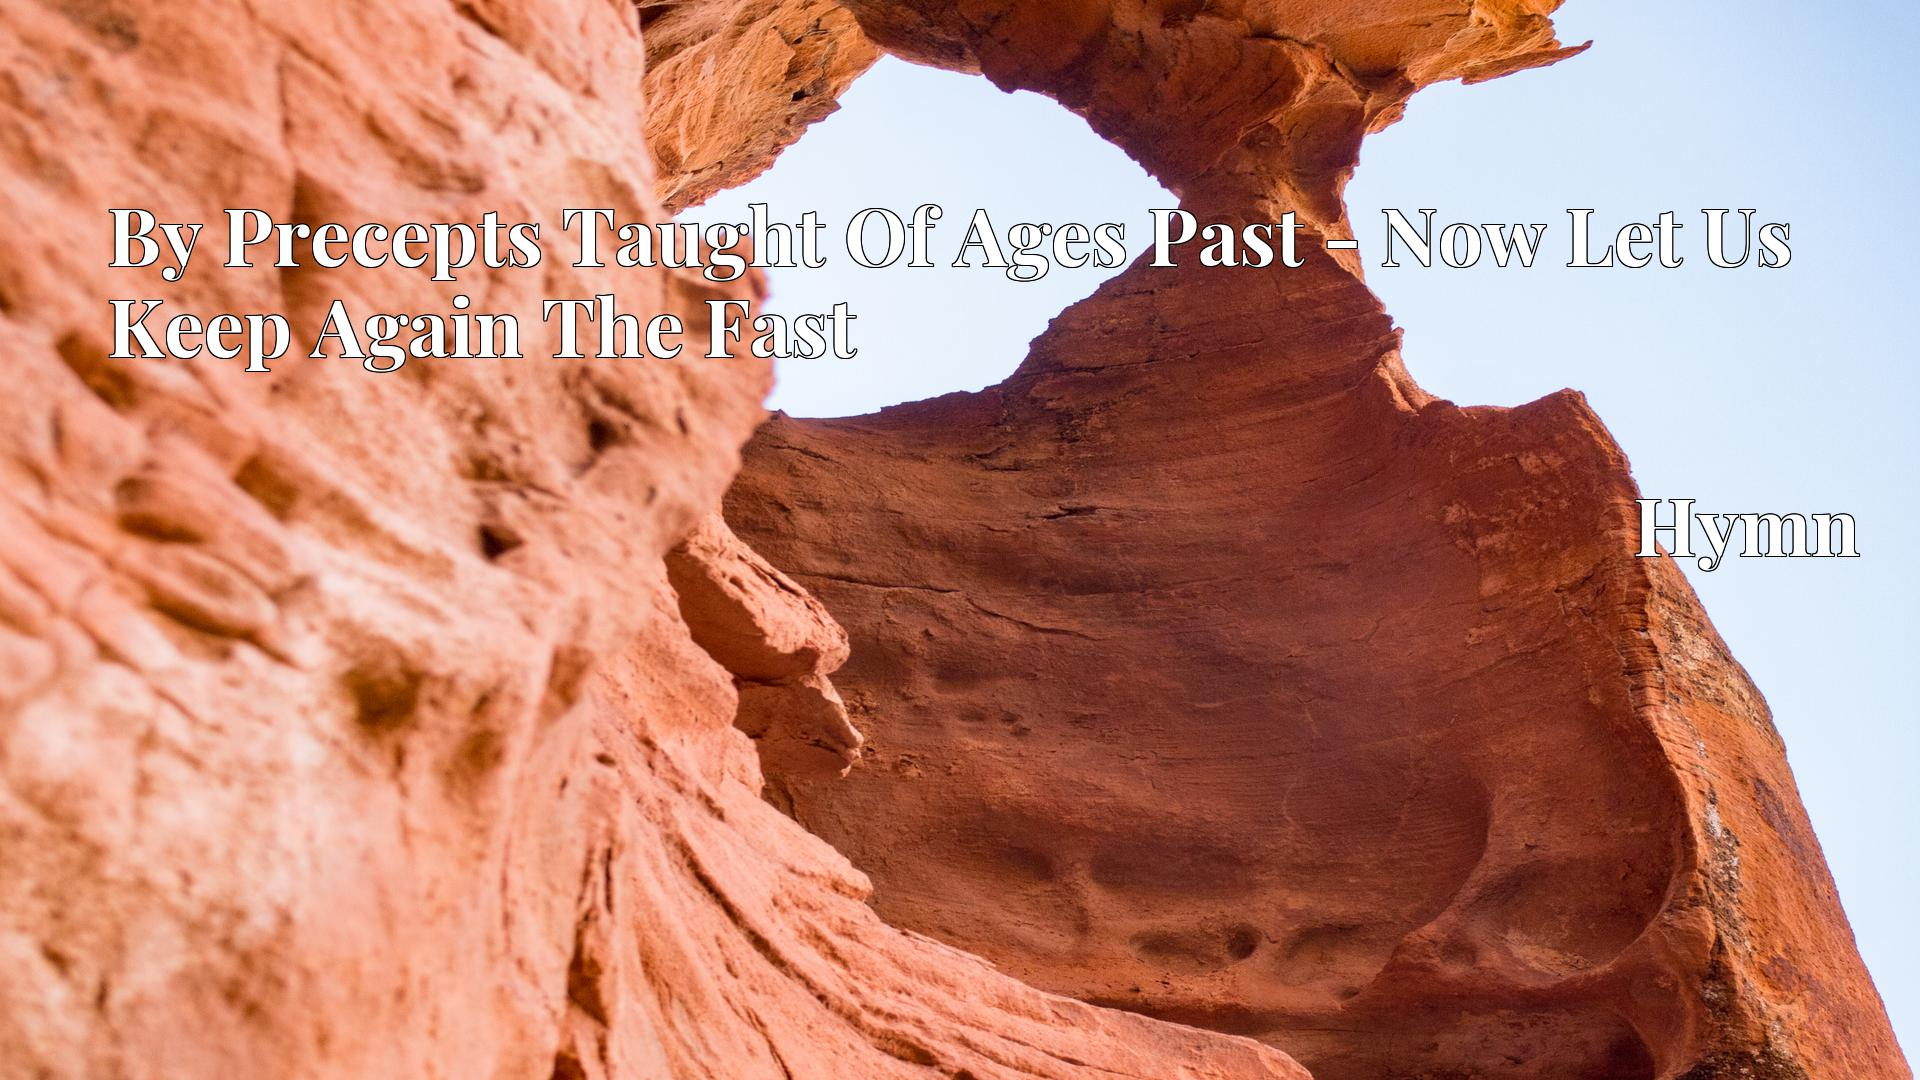 By Precepts Taught Of Ages Past - Now Let Us Keep Again The Fast Hymn